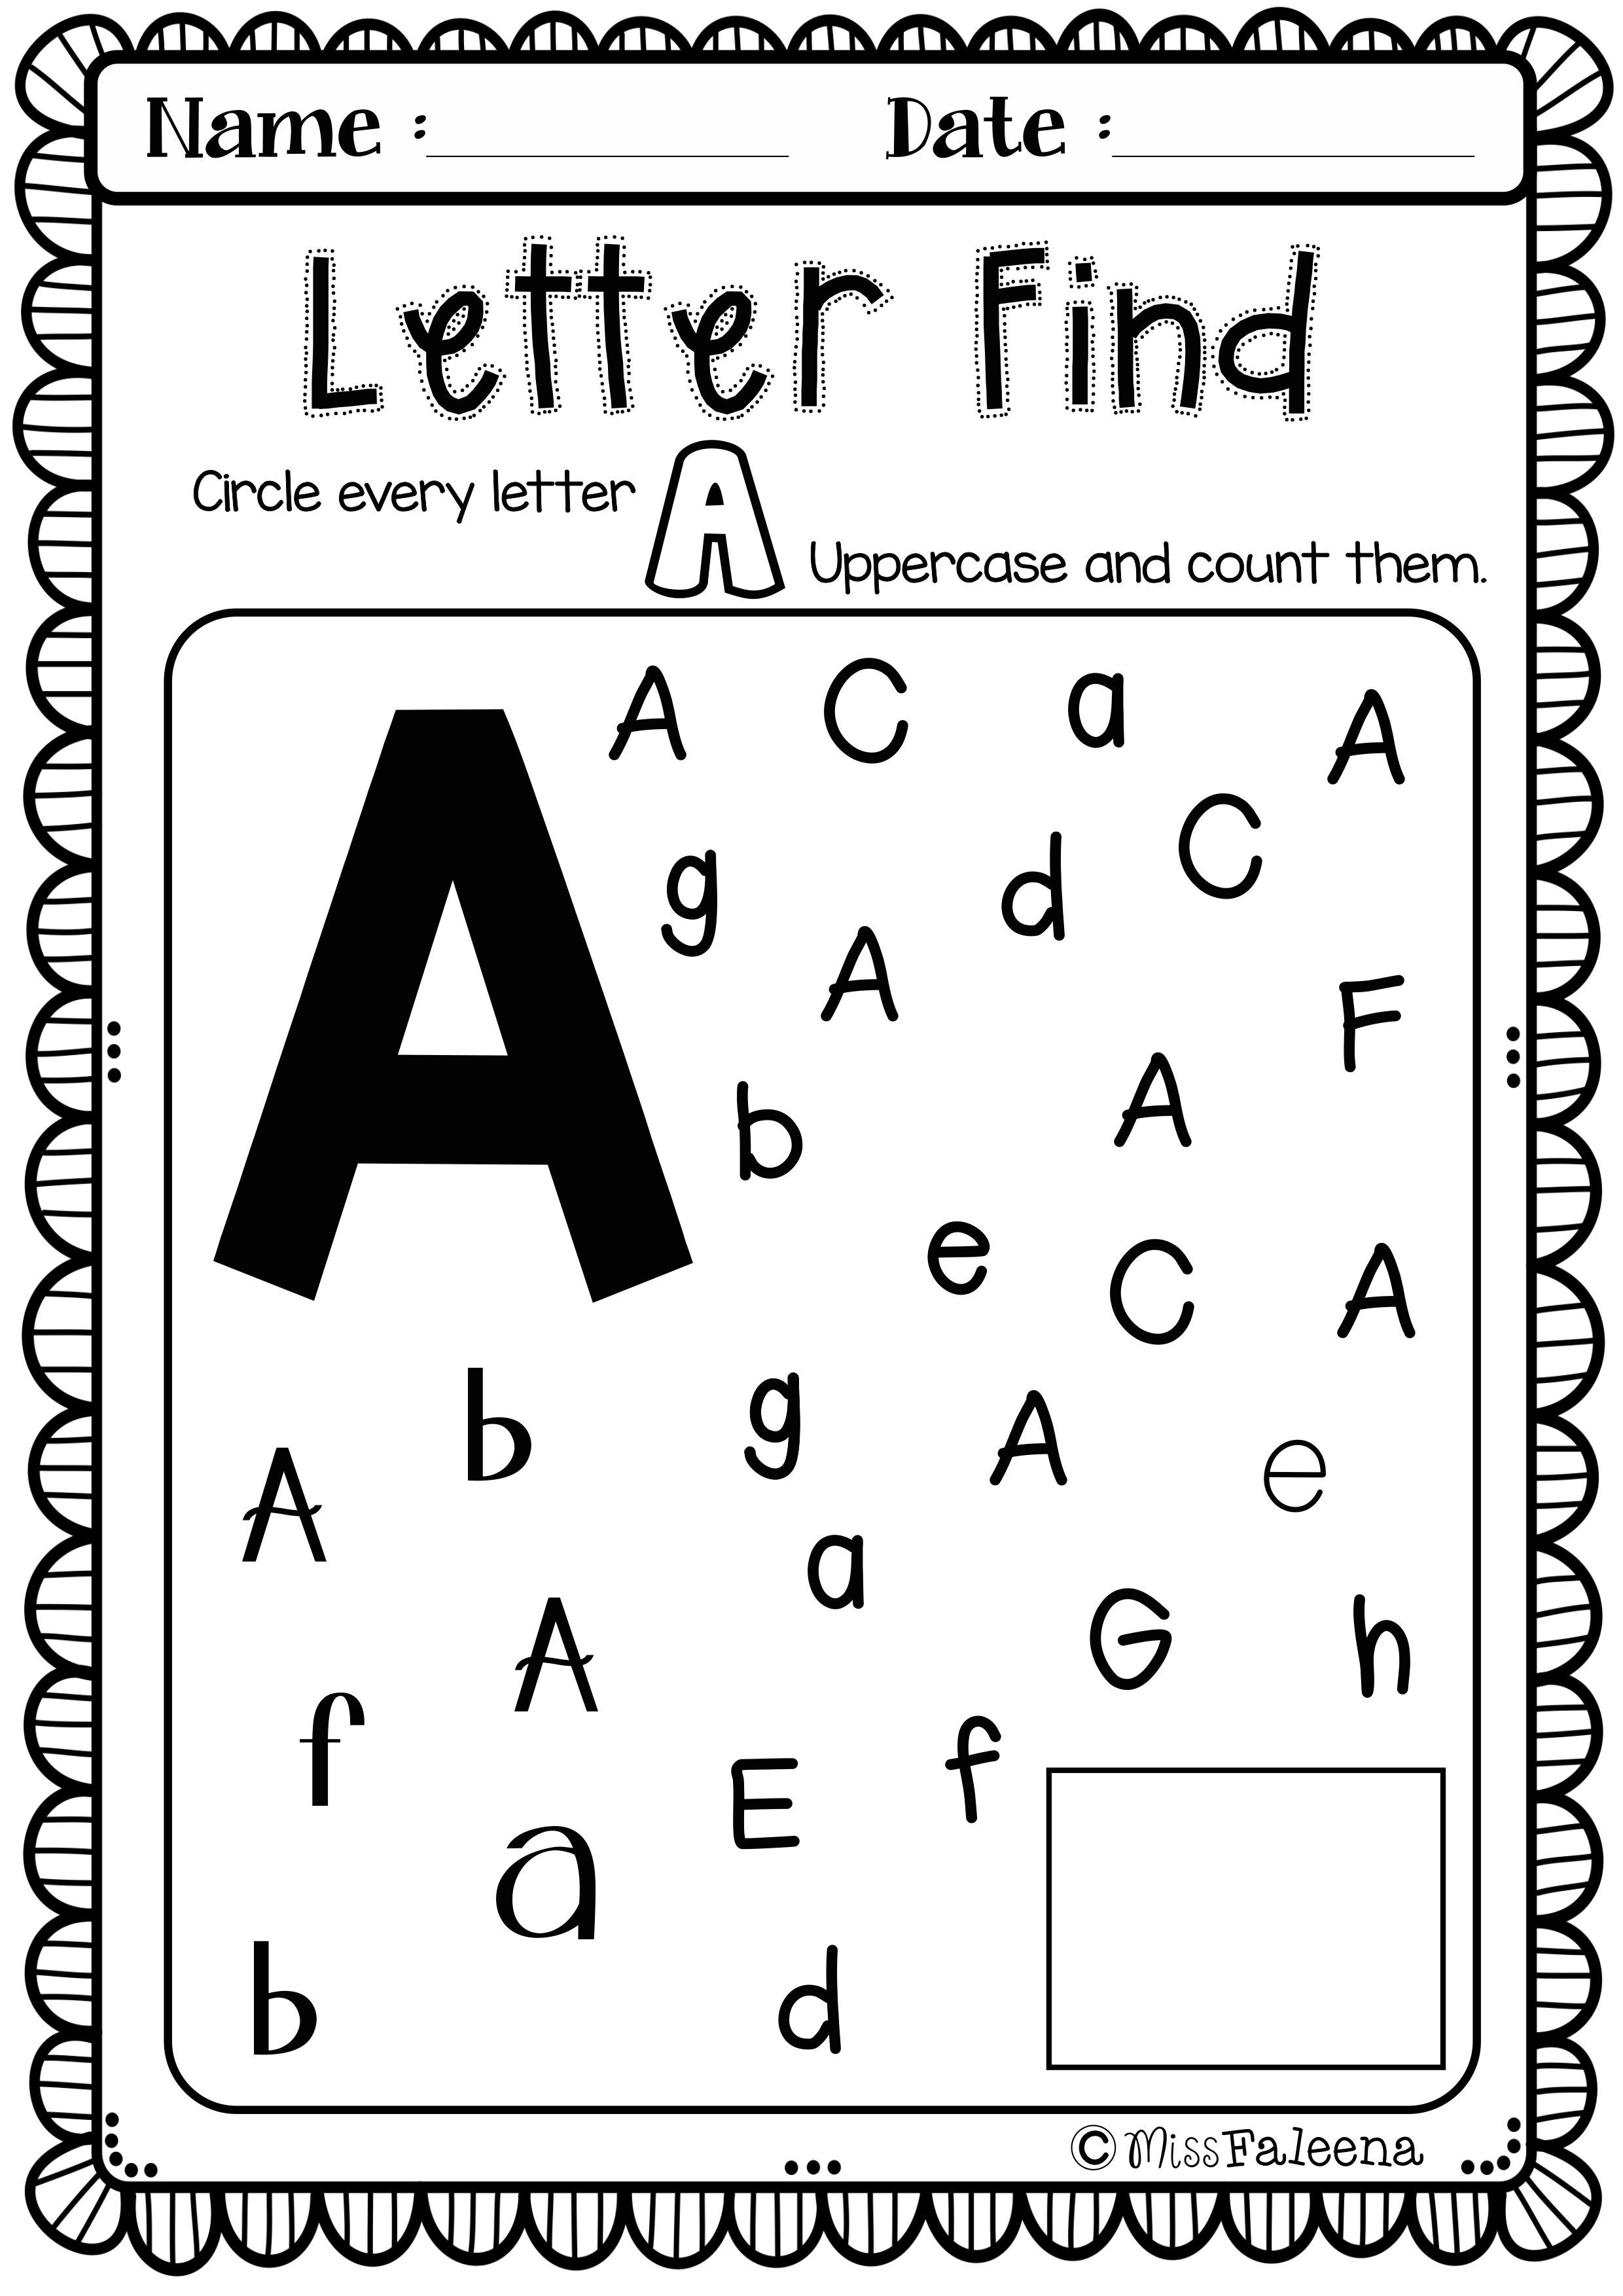 Letter of the Week A is designed to help teach letter A for